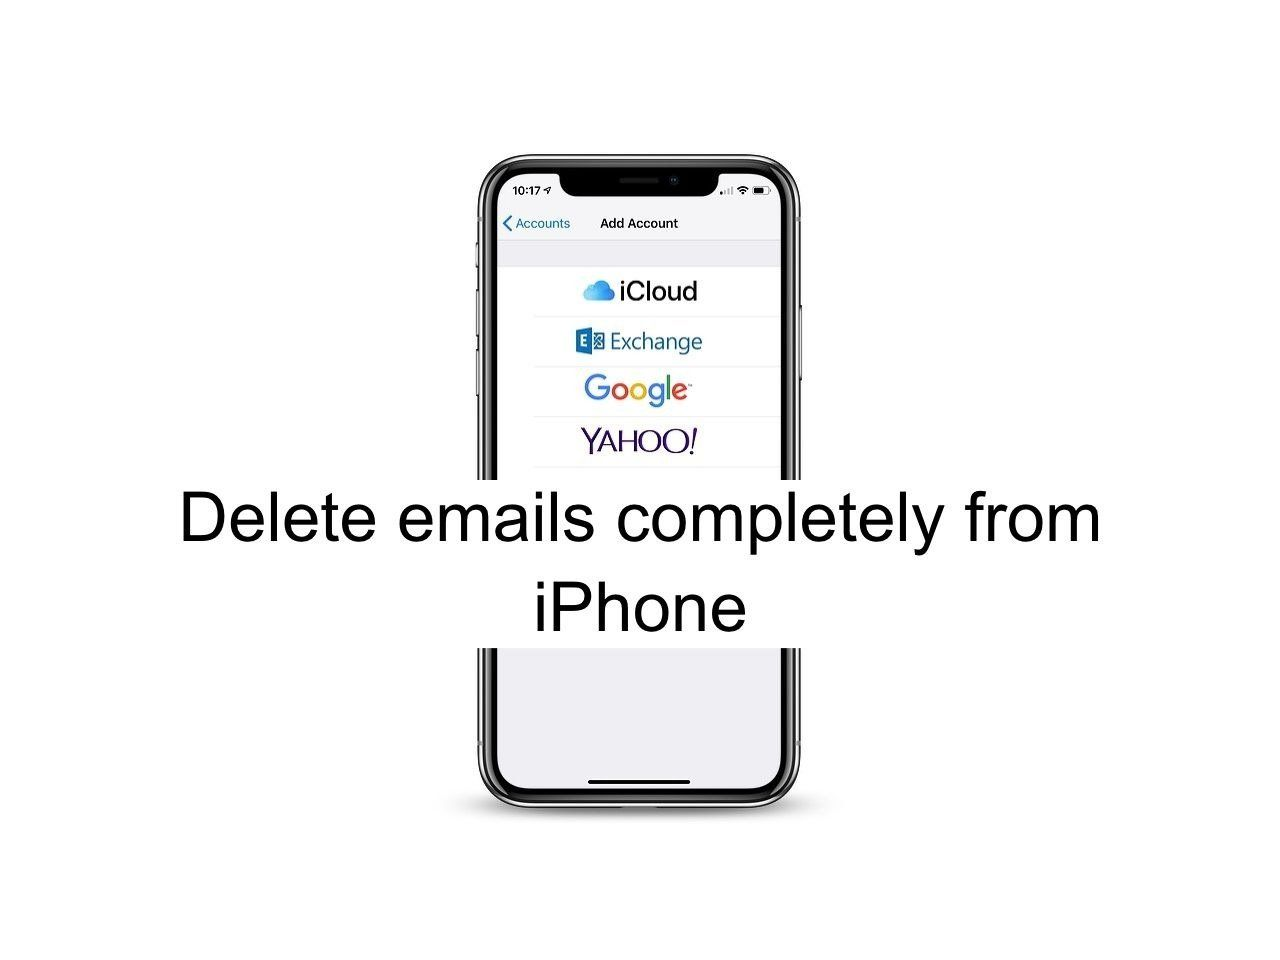 Need To Free Up Some Space On Your Iphone Ipad Look At Your Mail App It S Often A Storage Hog Learn How To Delete Emails Complete Iphone Iphone Hacks Icloud